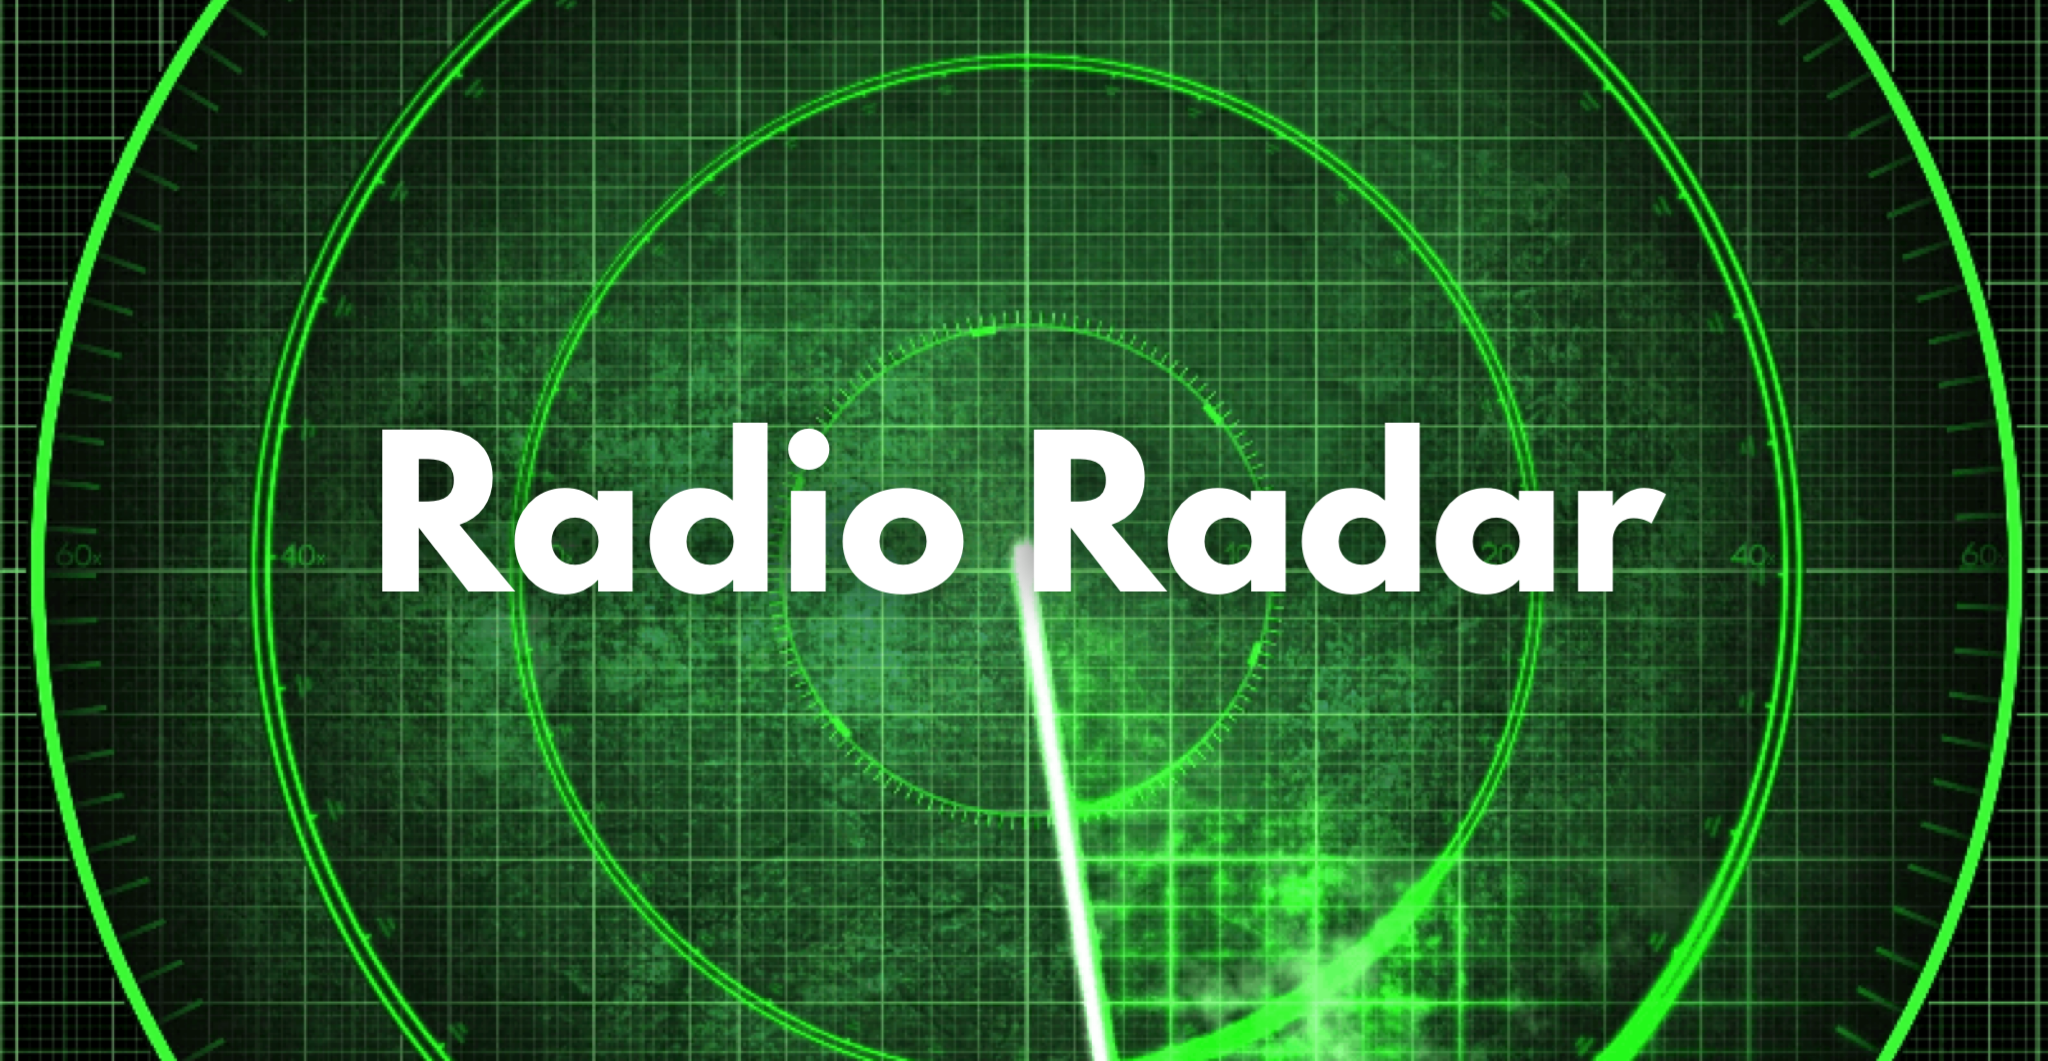 Top Radio Programmer Downloads of 2020